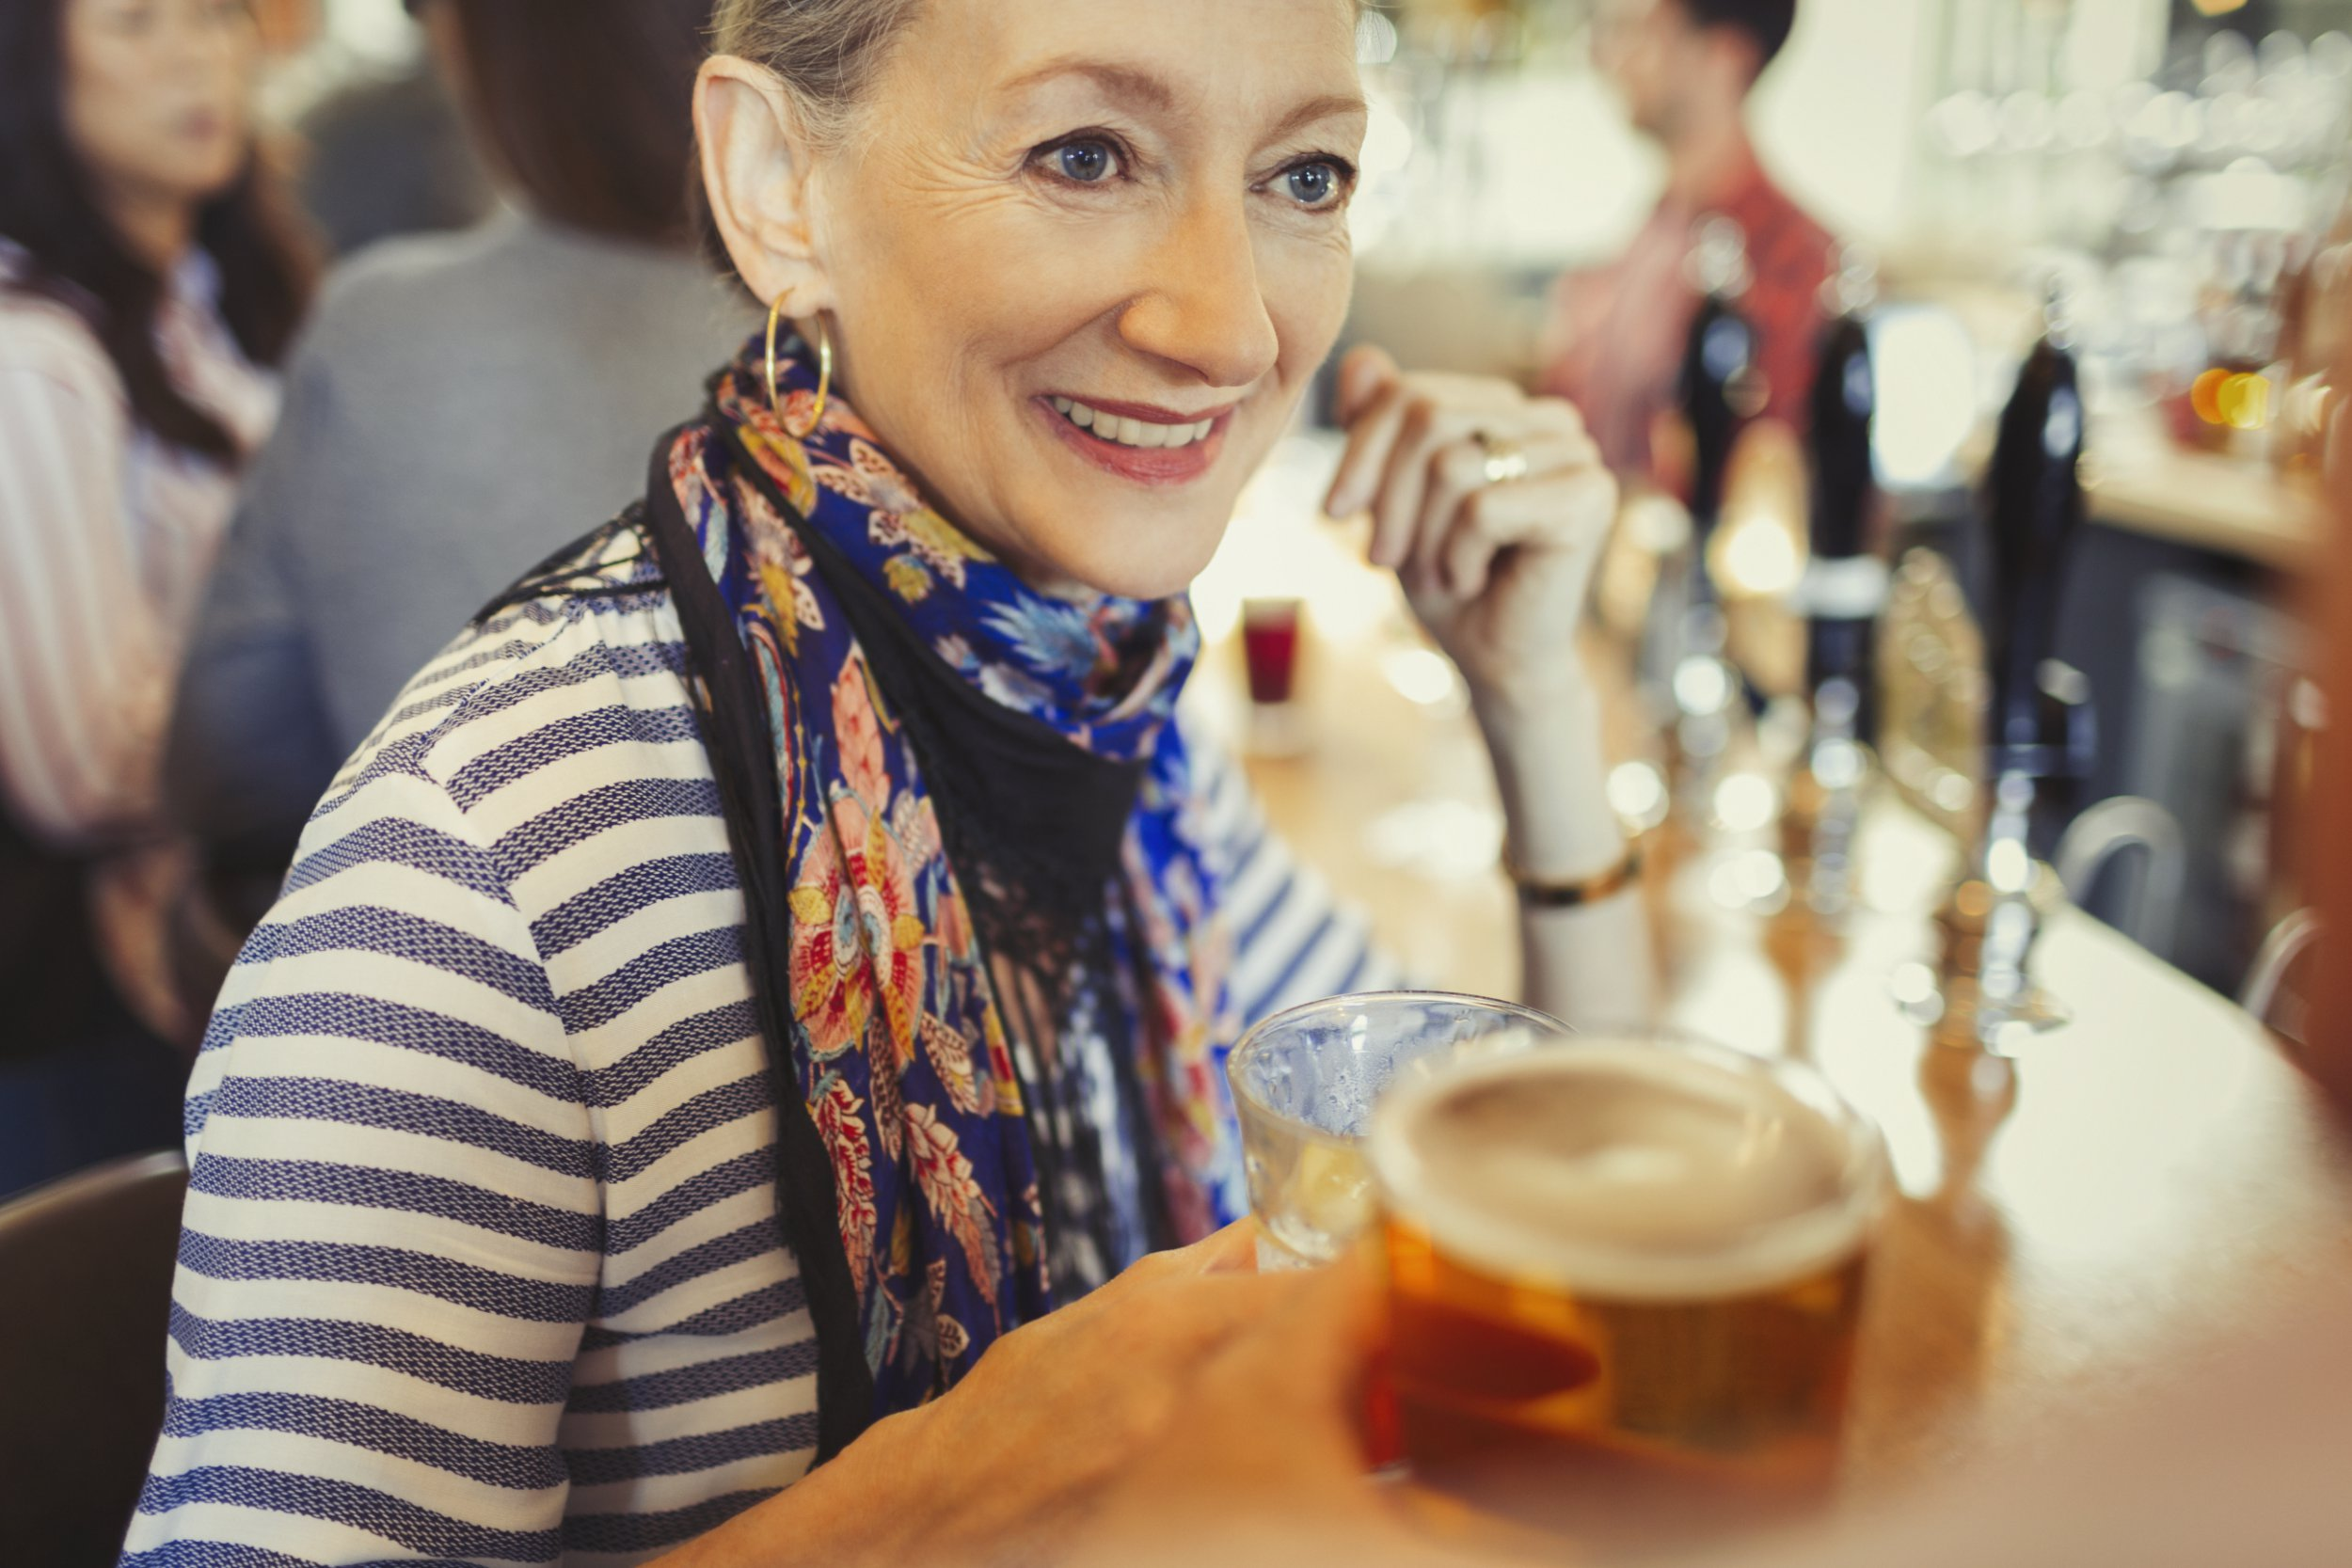 'Don't give up drinking when you get older' if you want to decrease chance of dementia